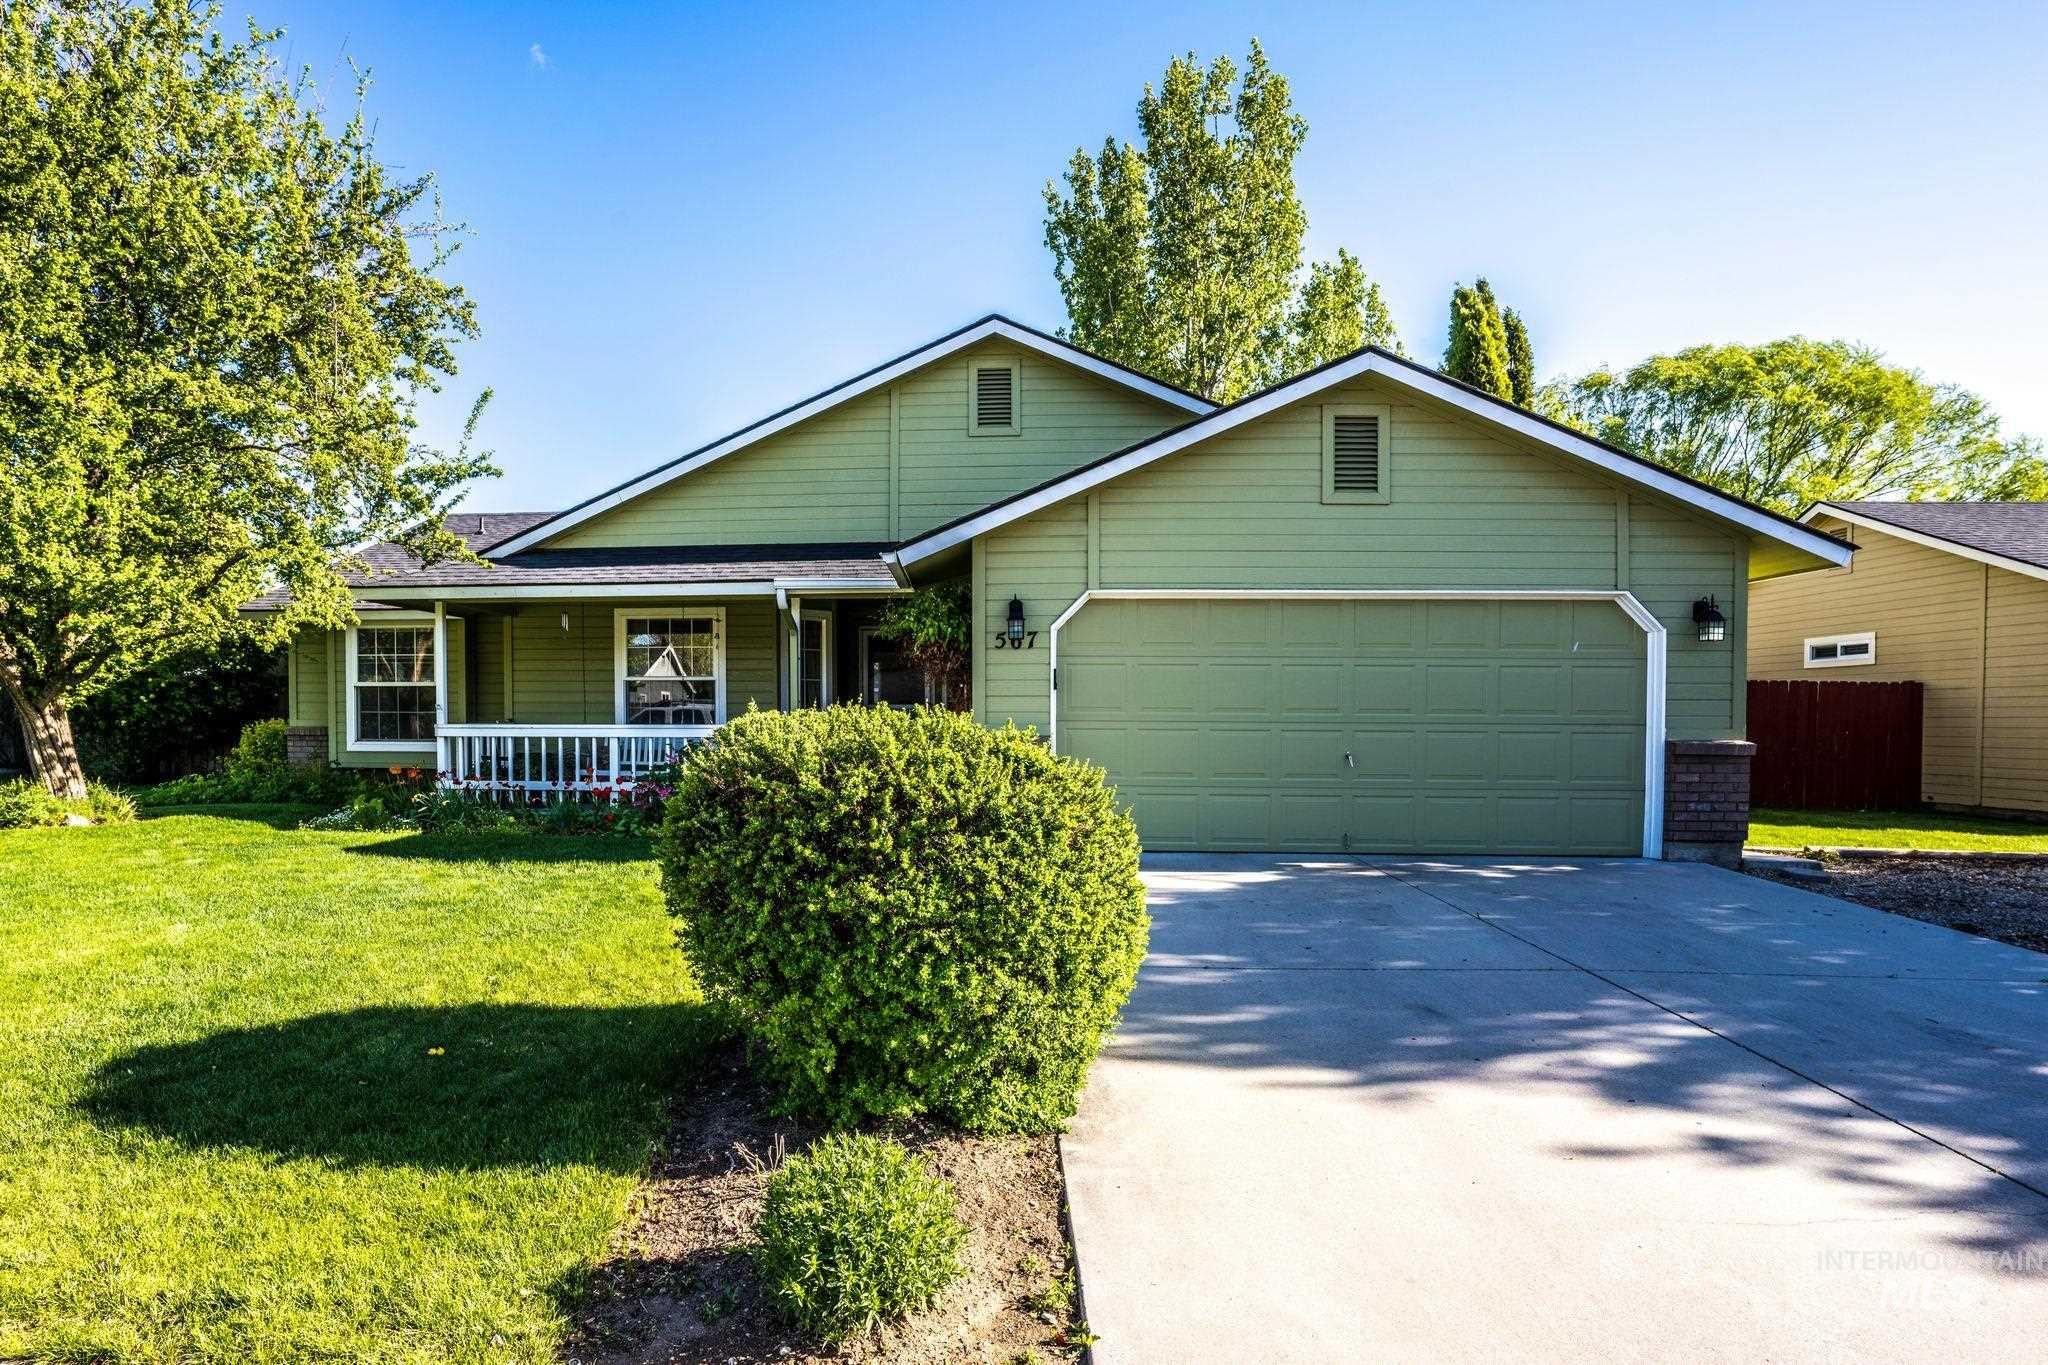 567 E Brown Bear Property Photo - Meridian, ID real estate listing